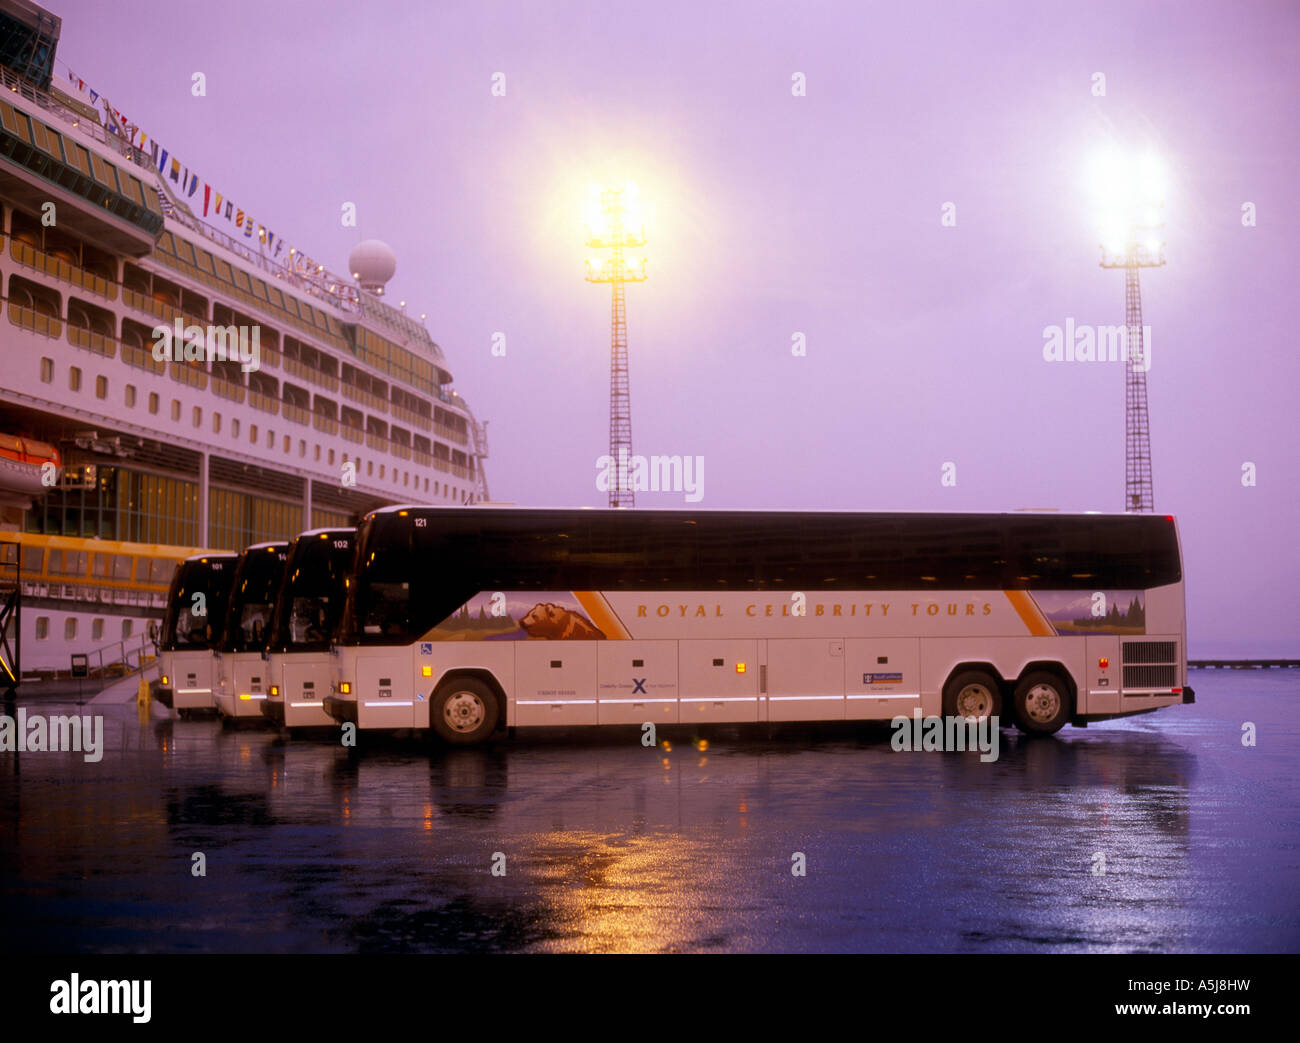 Royal Celebrity Tours motorcoaches lined up on the dock in Seward - Stock Image